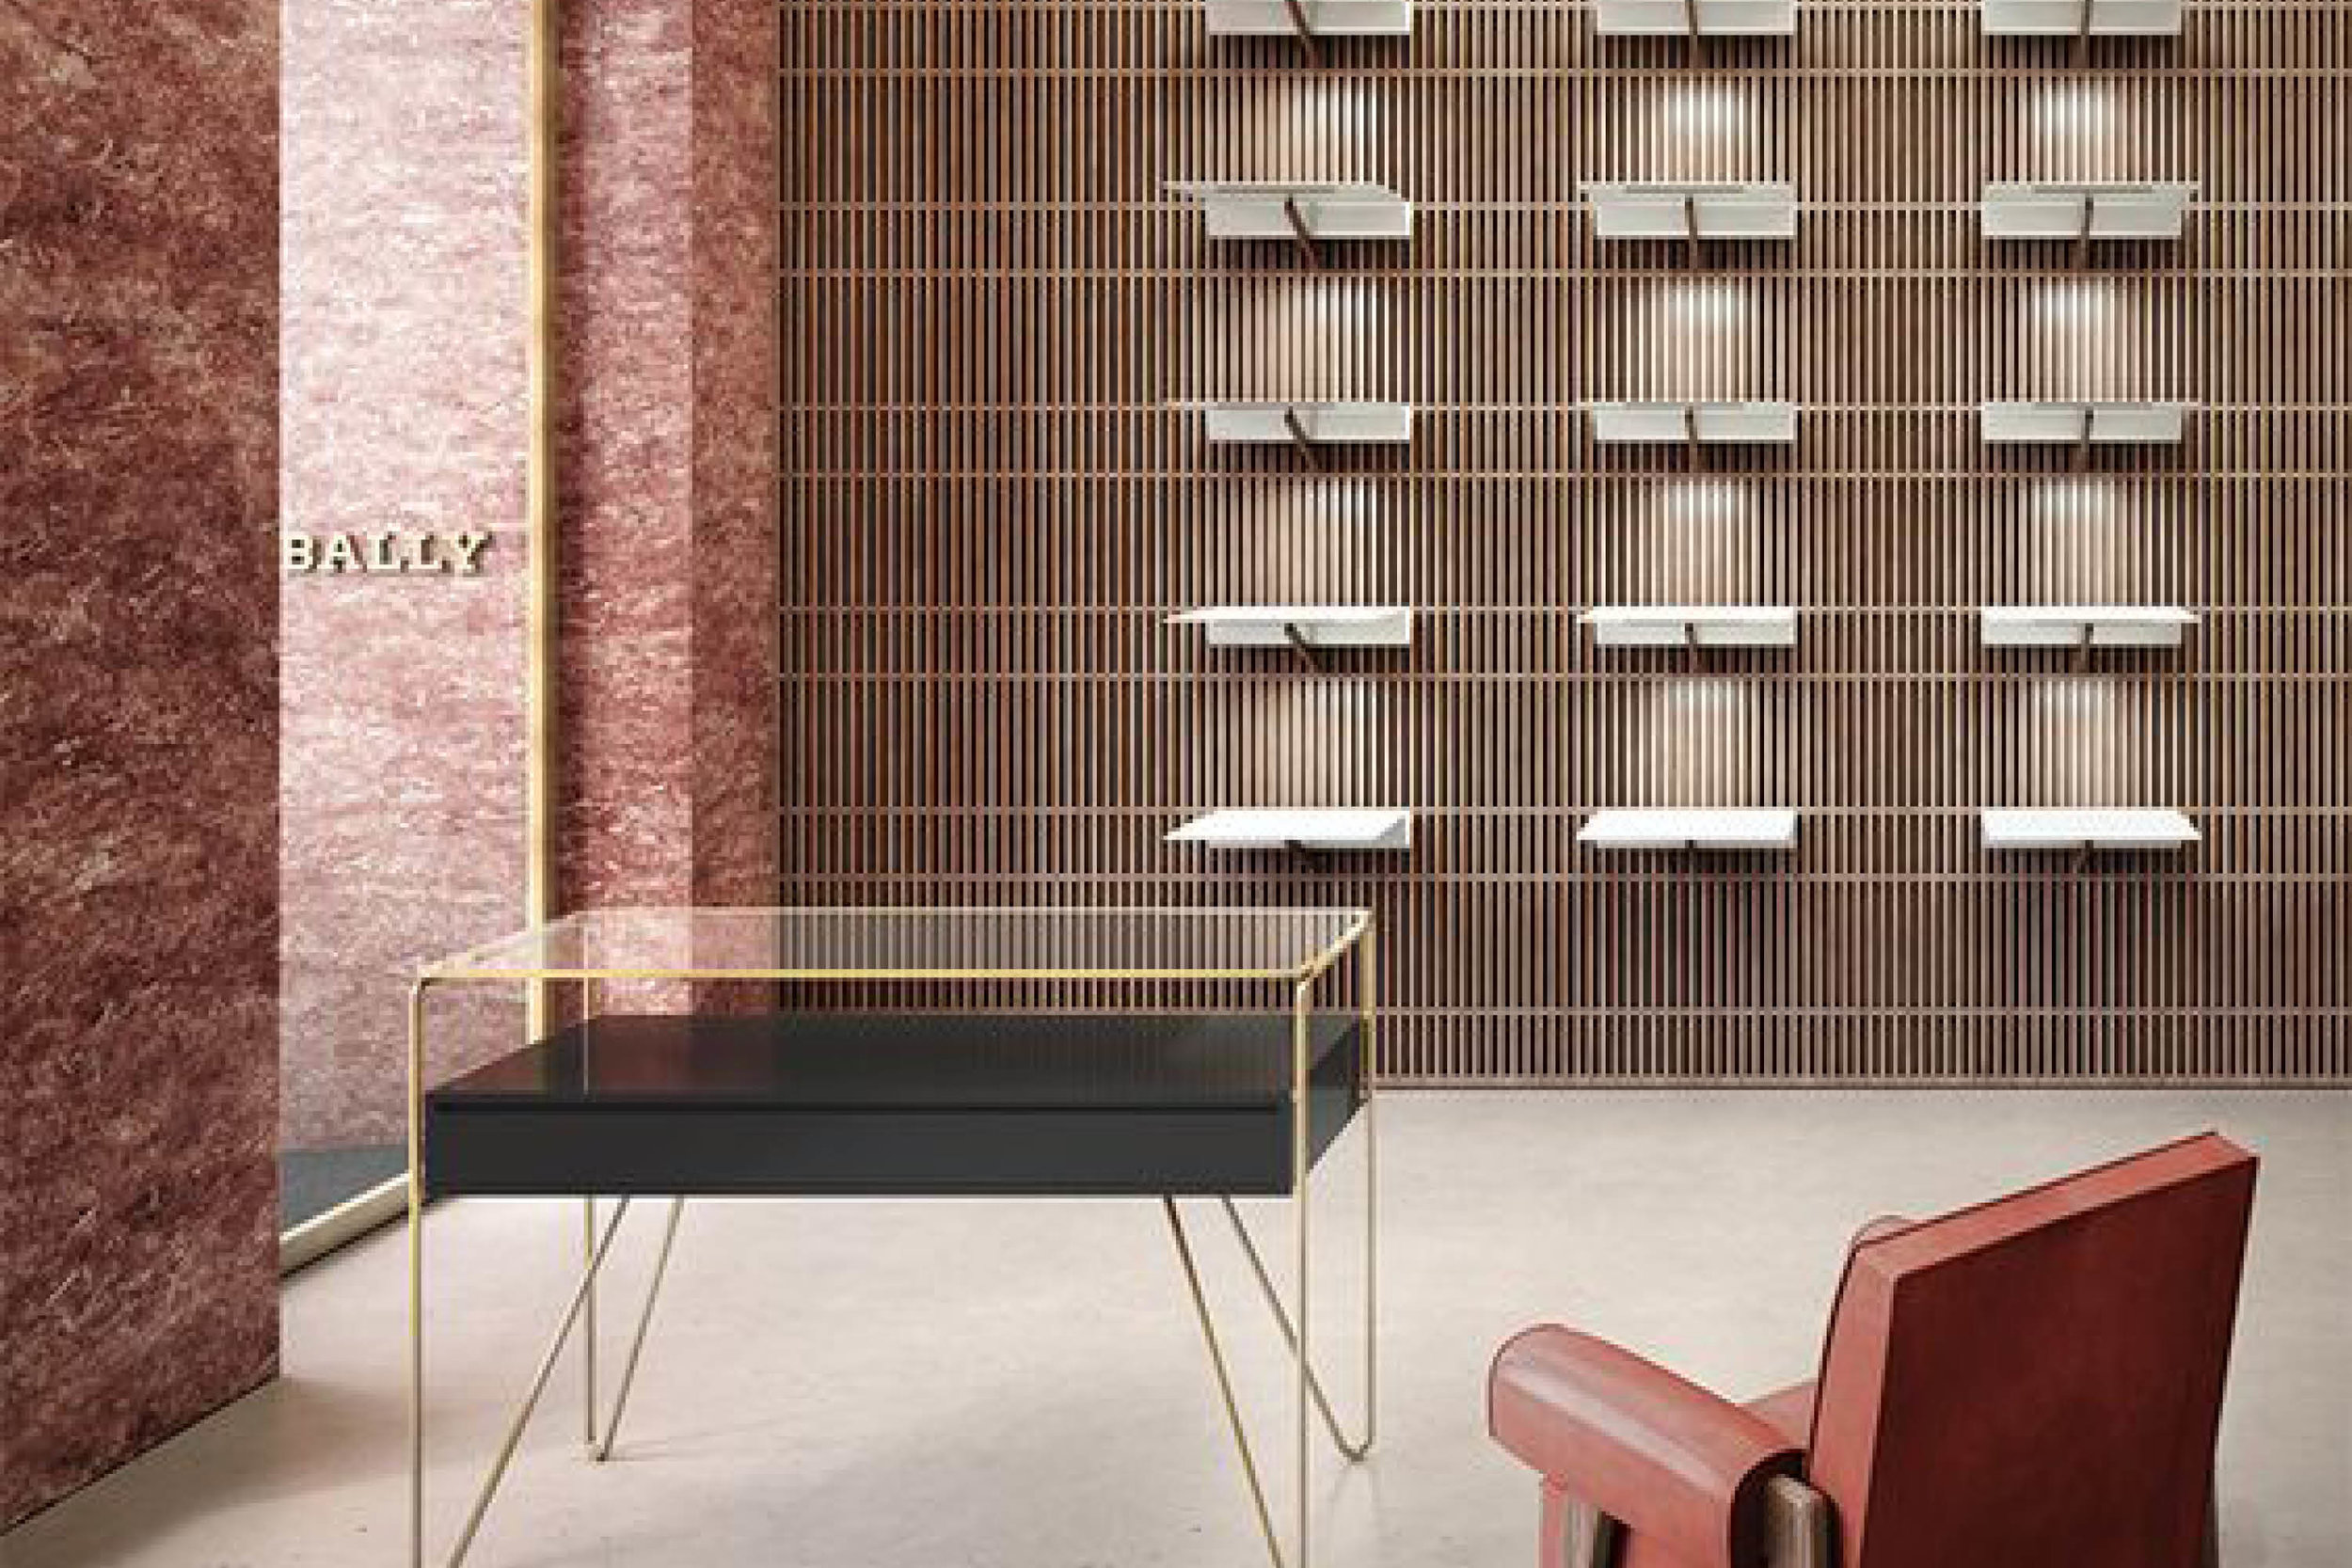 Bally LA store designed by architect David Chipperfield